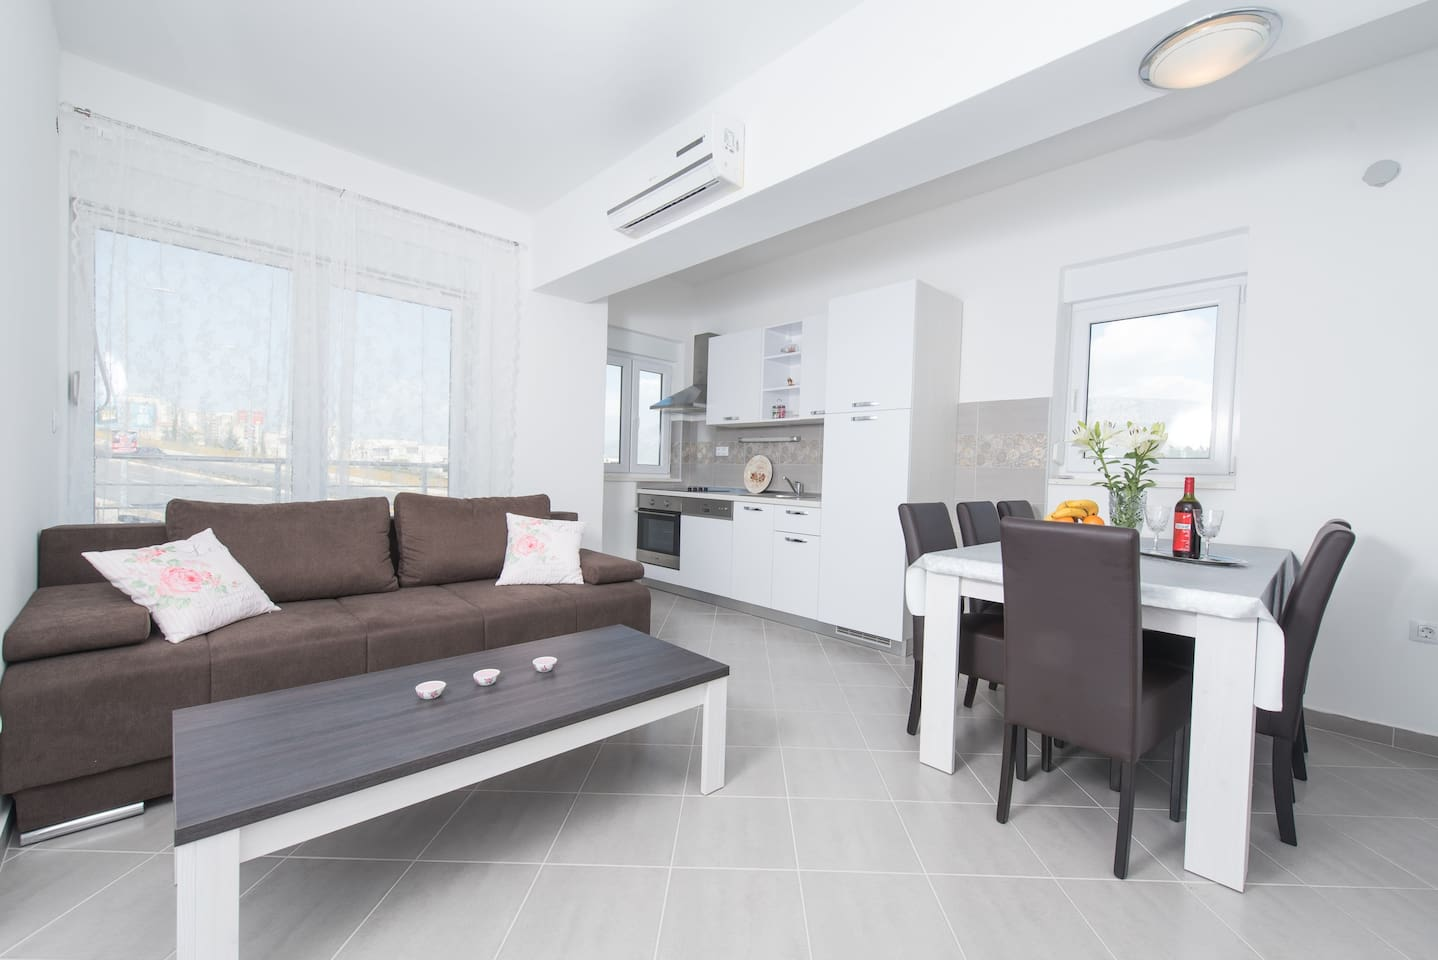 Kitchen with dining area and living room